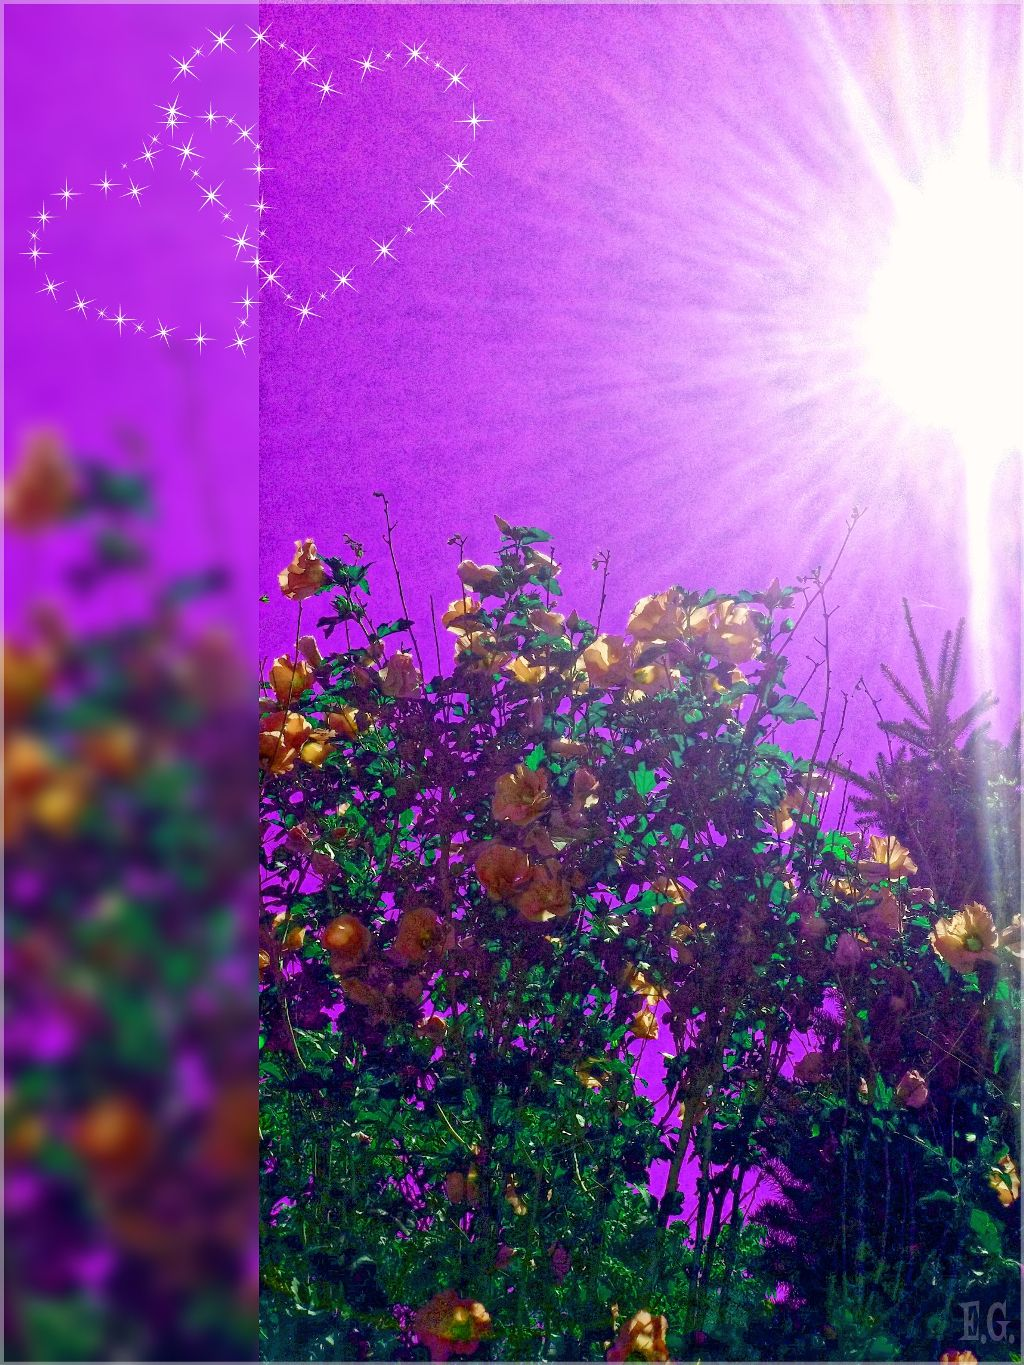 #sun #flowers #photography #hue #love  💜 This edit is for all of my friends here on PA ✌😘💕Much love to you!💜